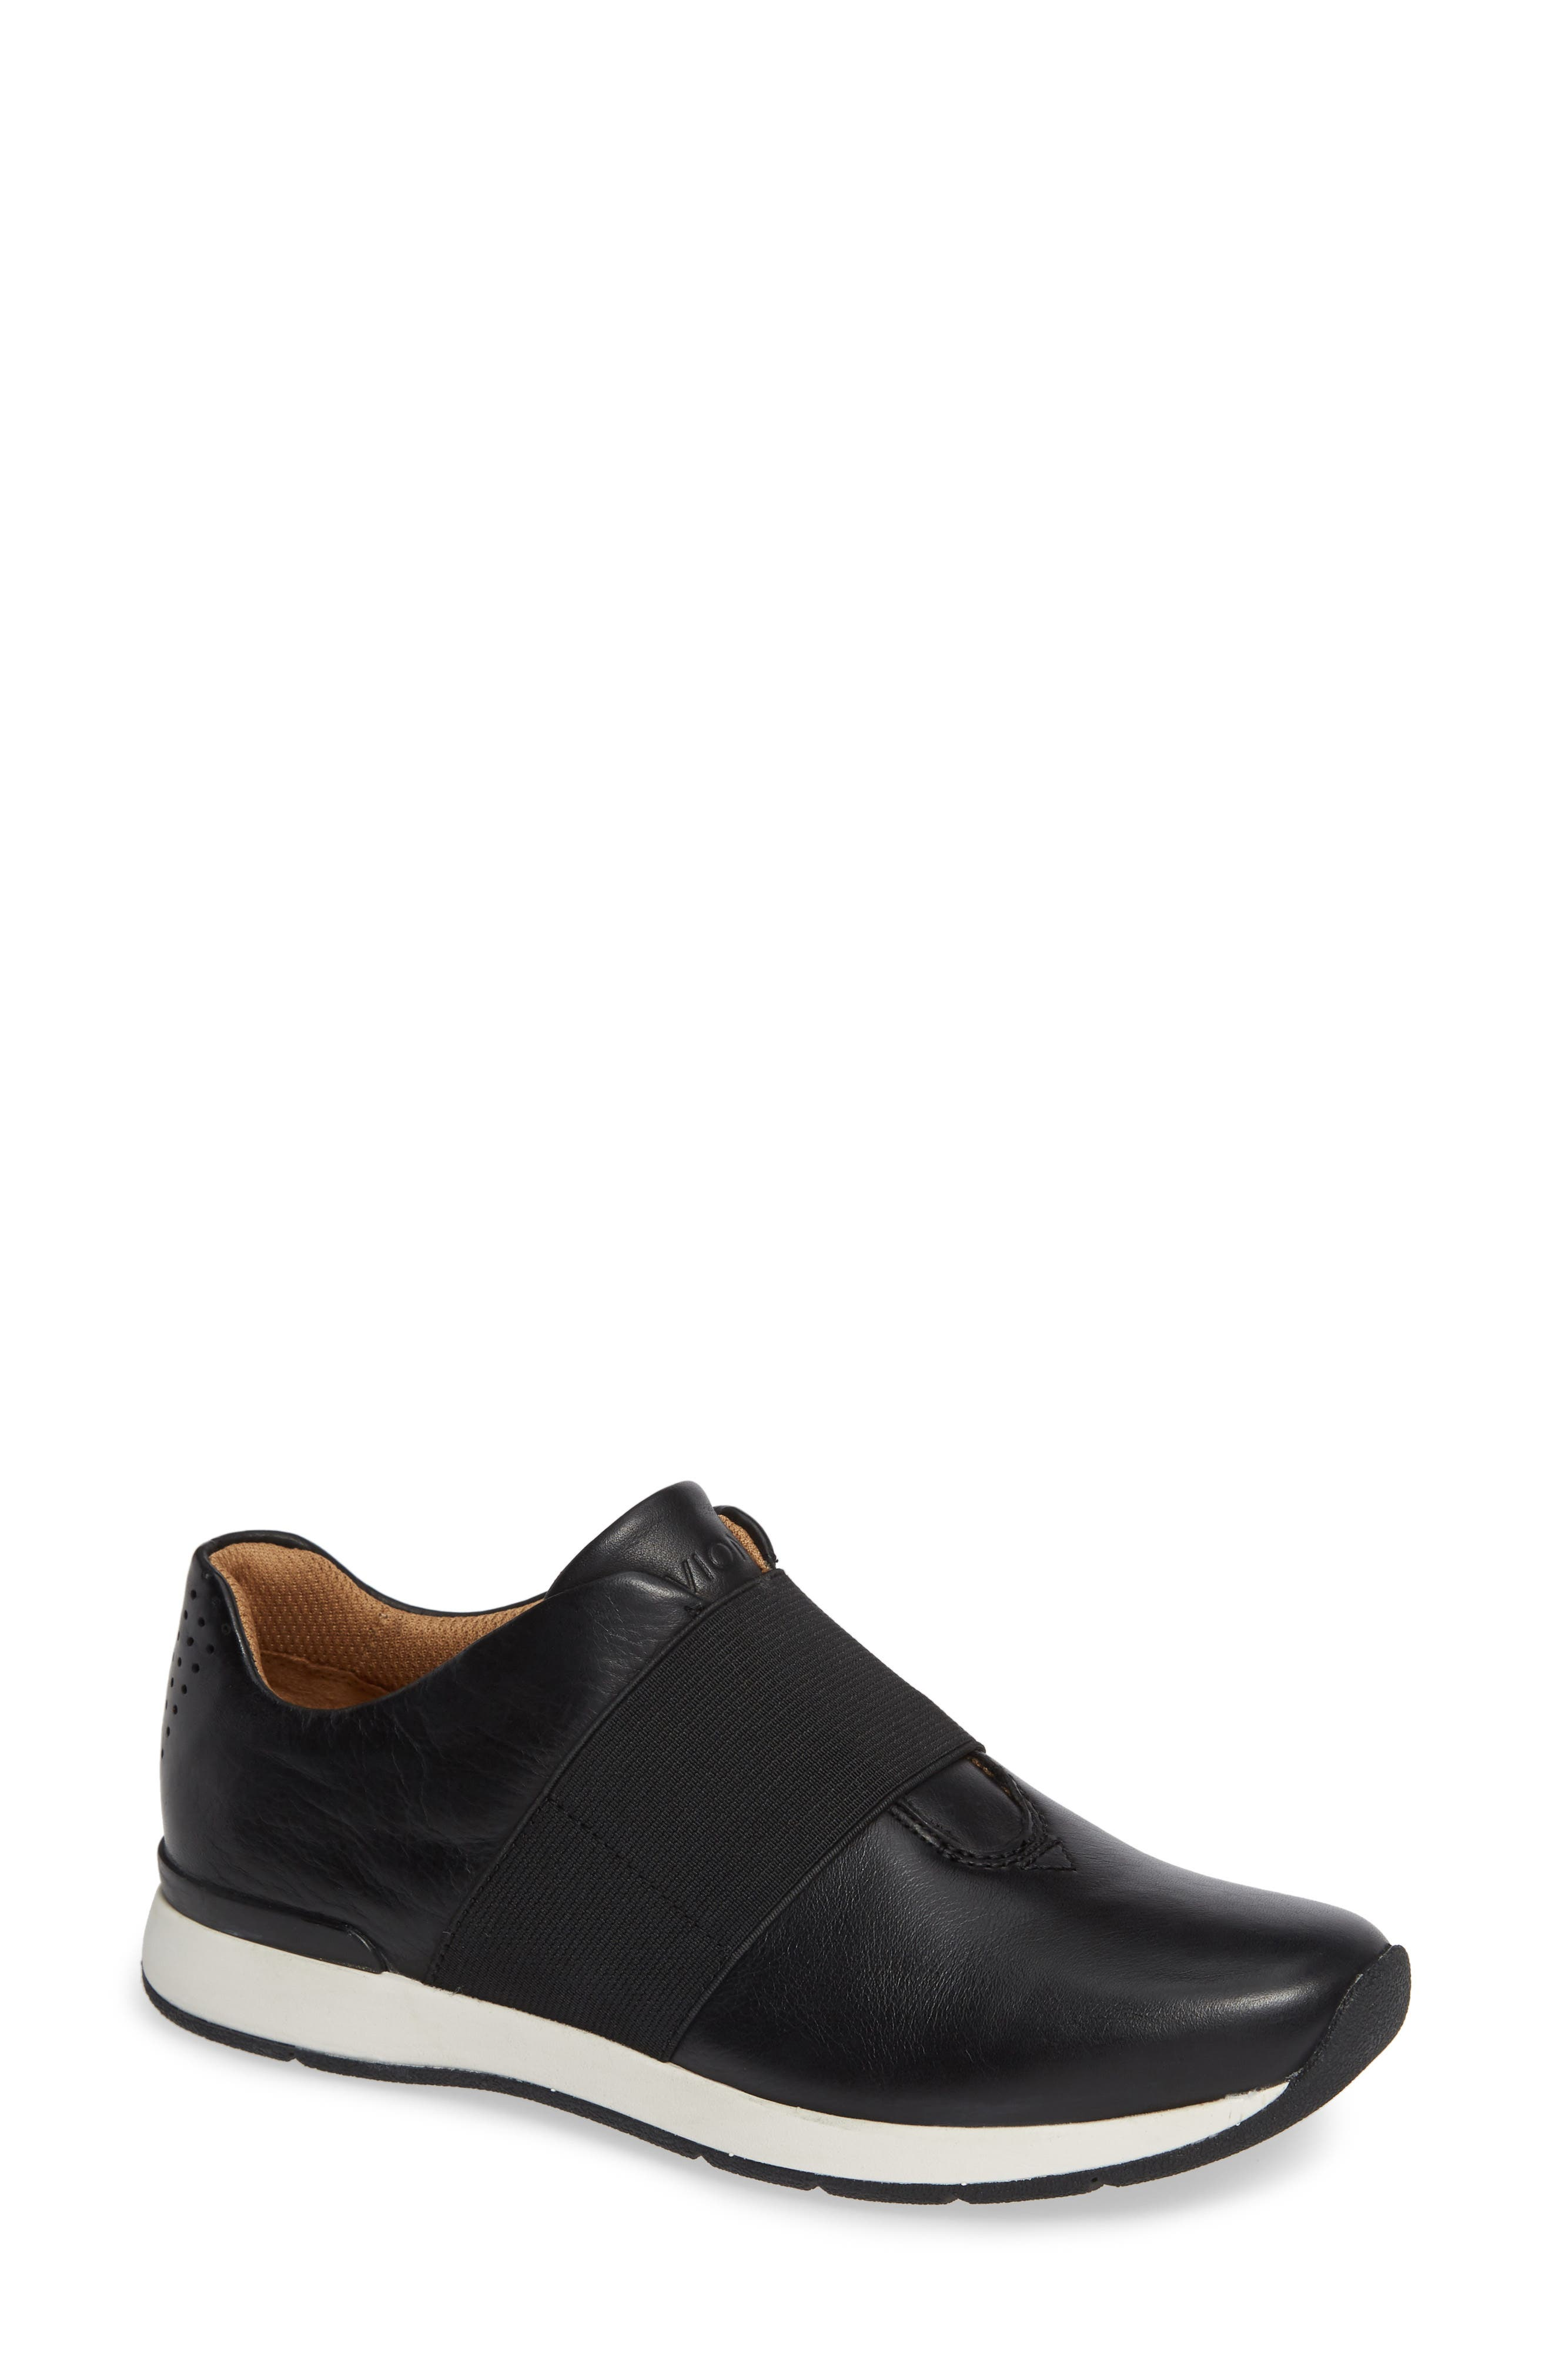 Codie Slip-On Sneaker,                             Main thumbnail 1, color,                             BLACK LEATHER